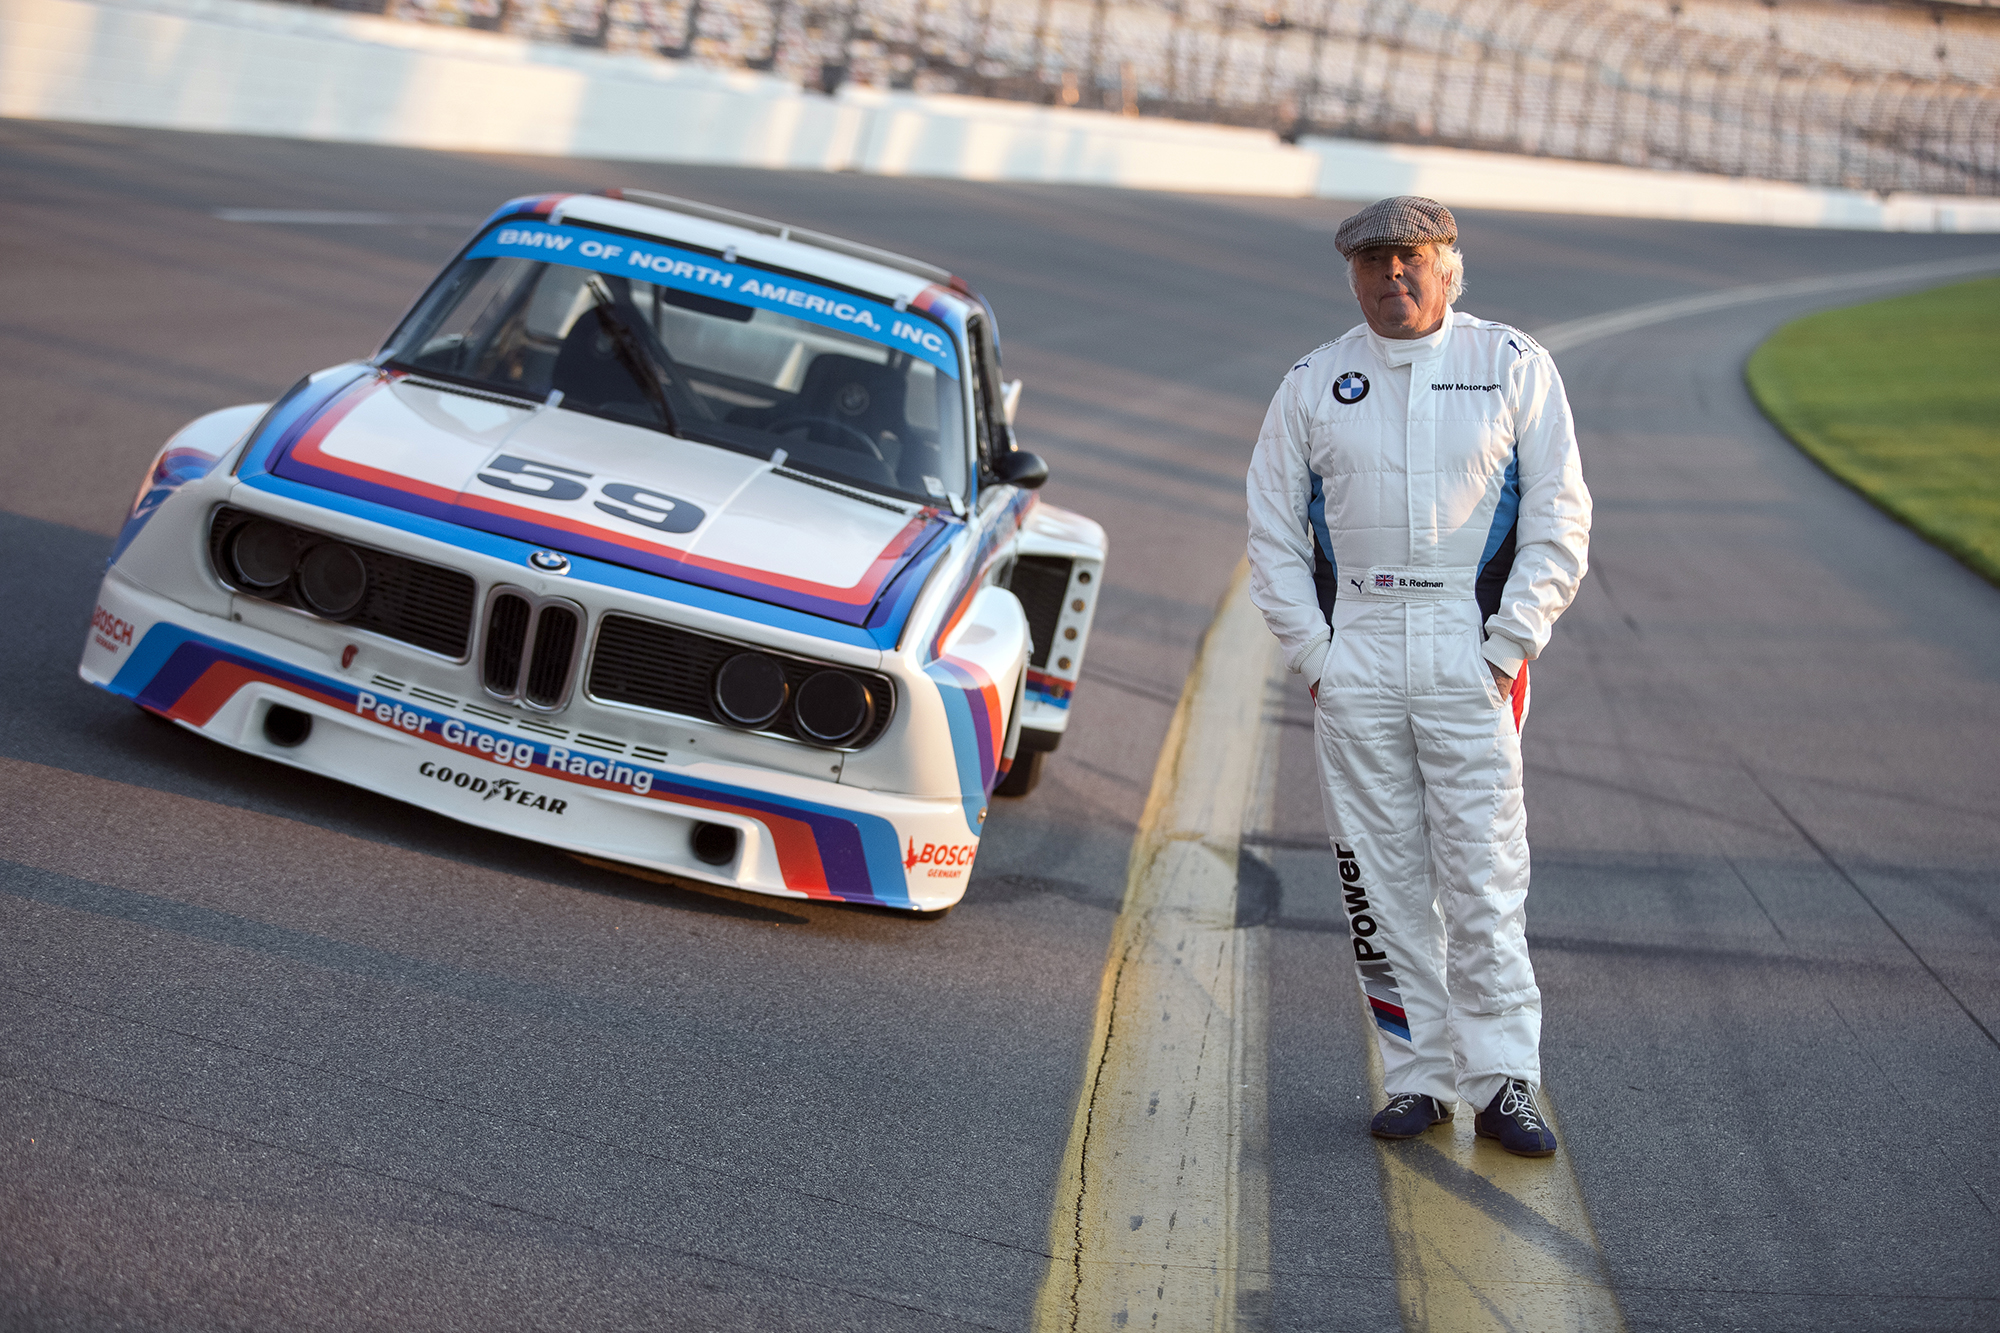 Bmw Driving School >> Bmw To Offer Amazing Driving School Experience To Lucky Few